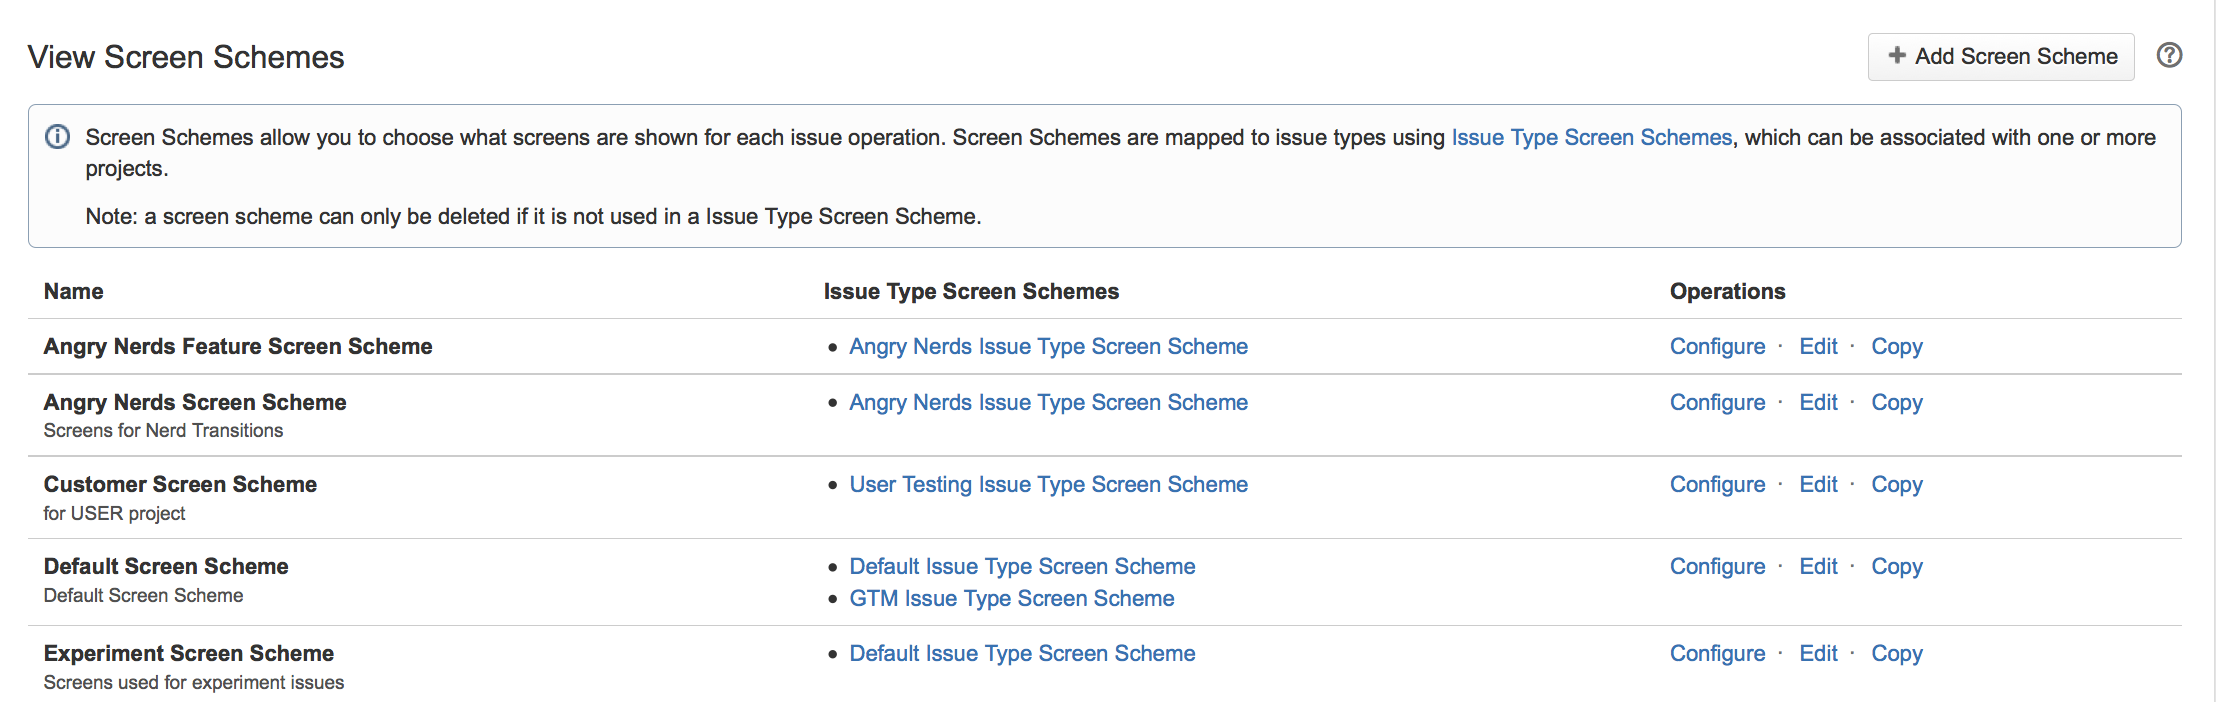 List of screen schemes.